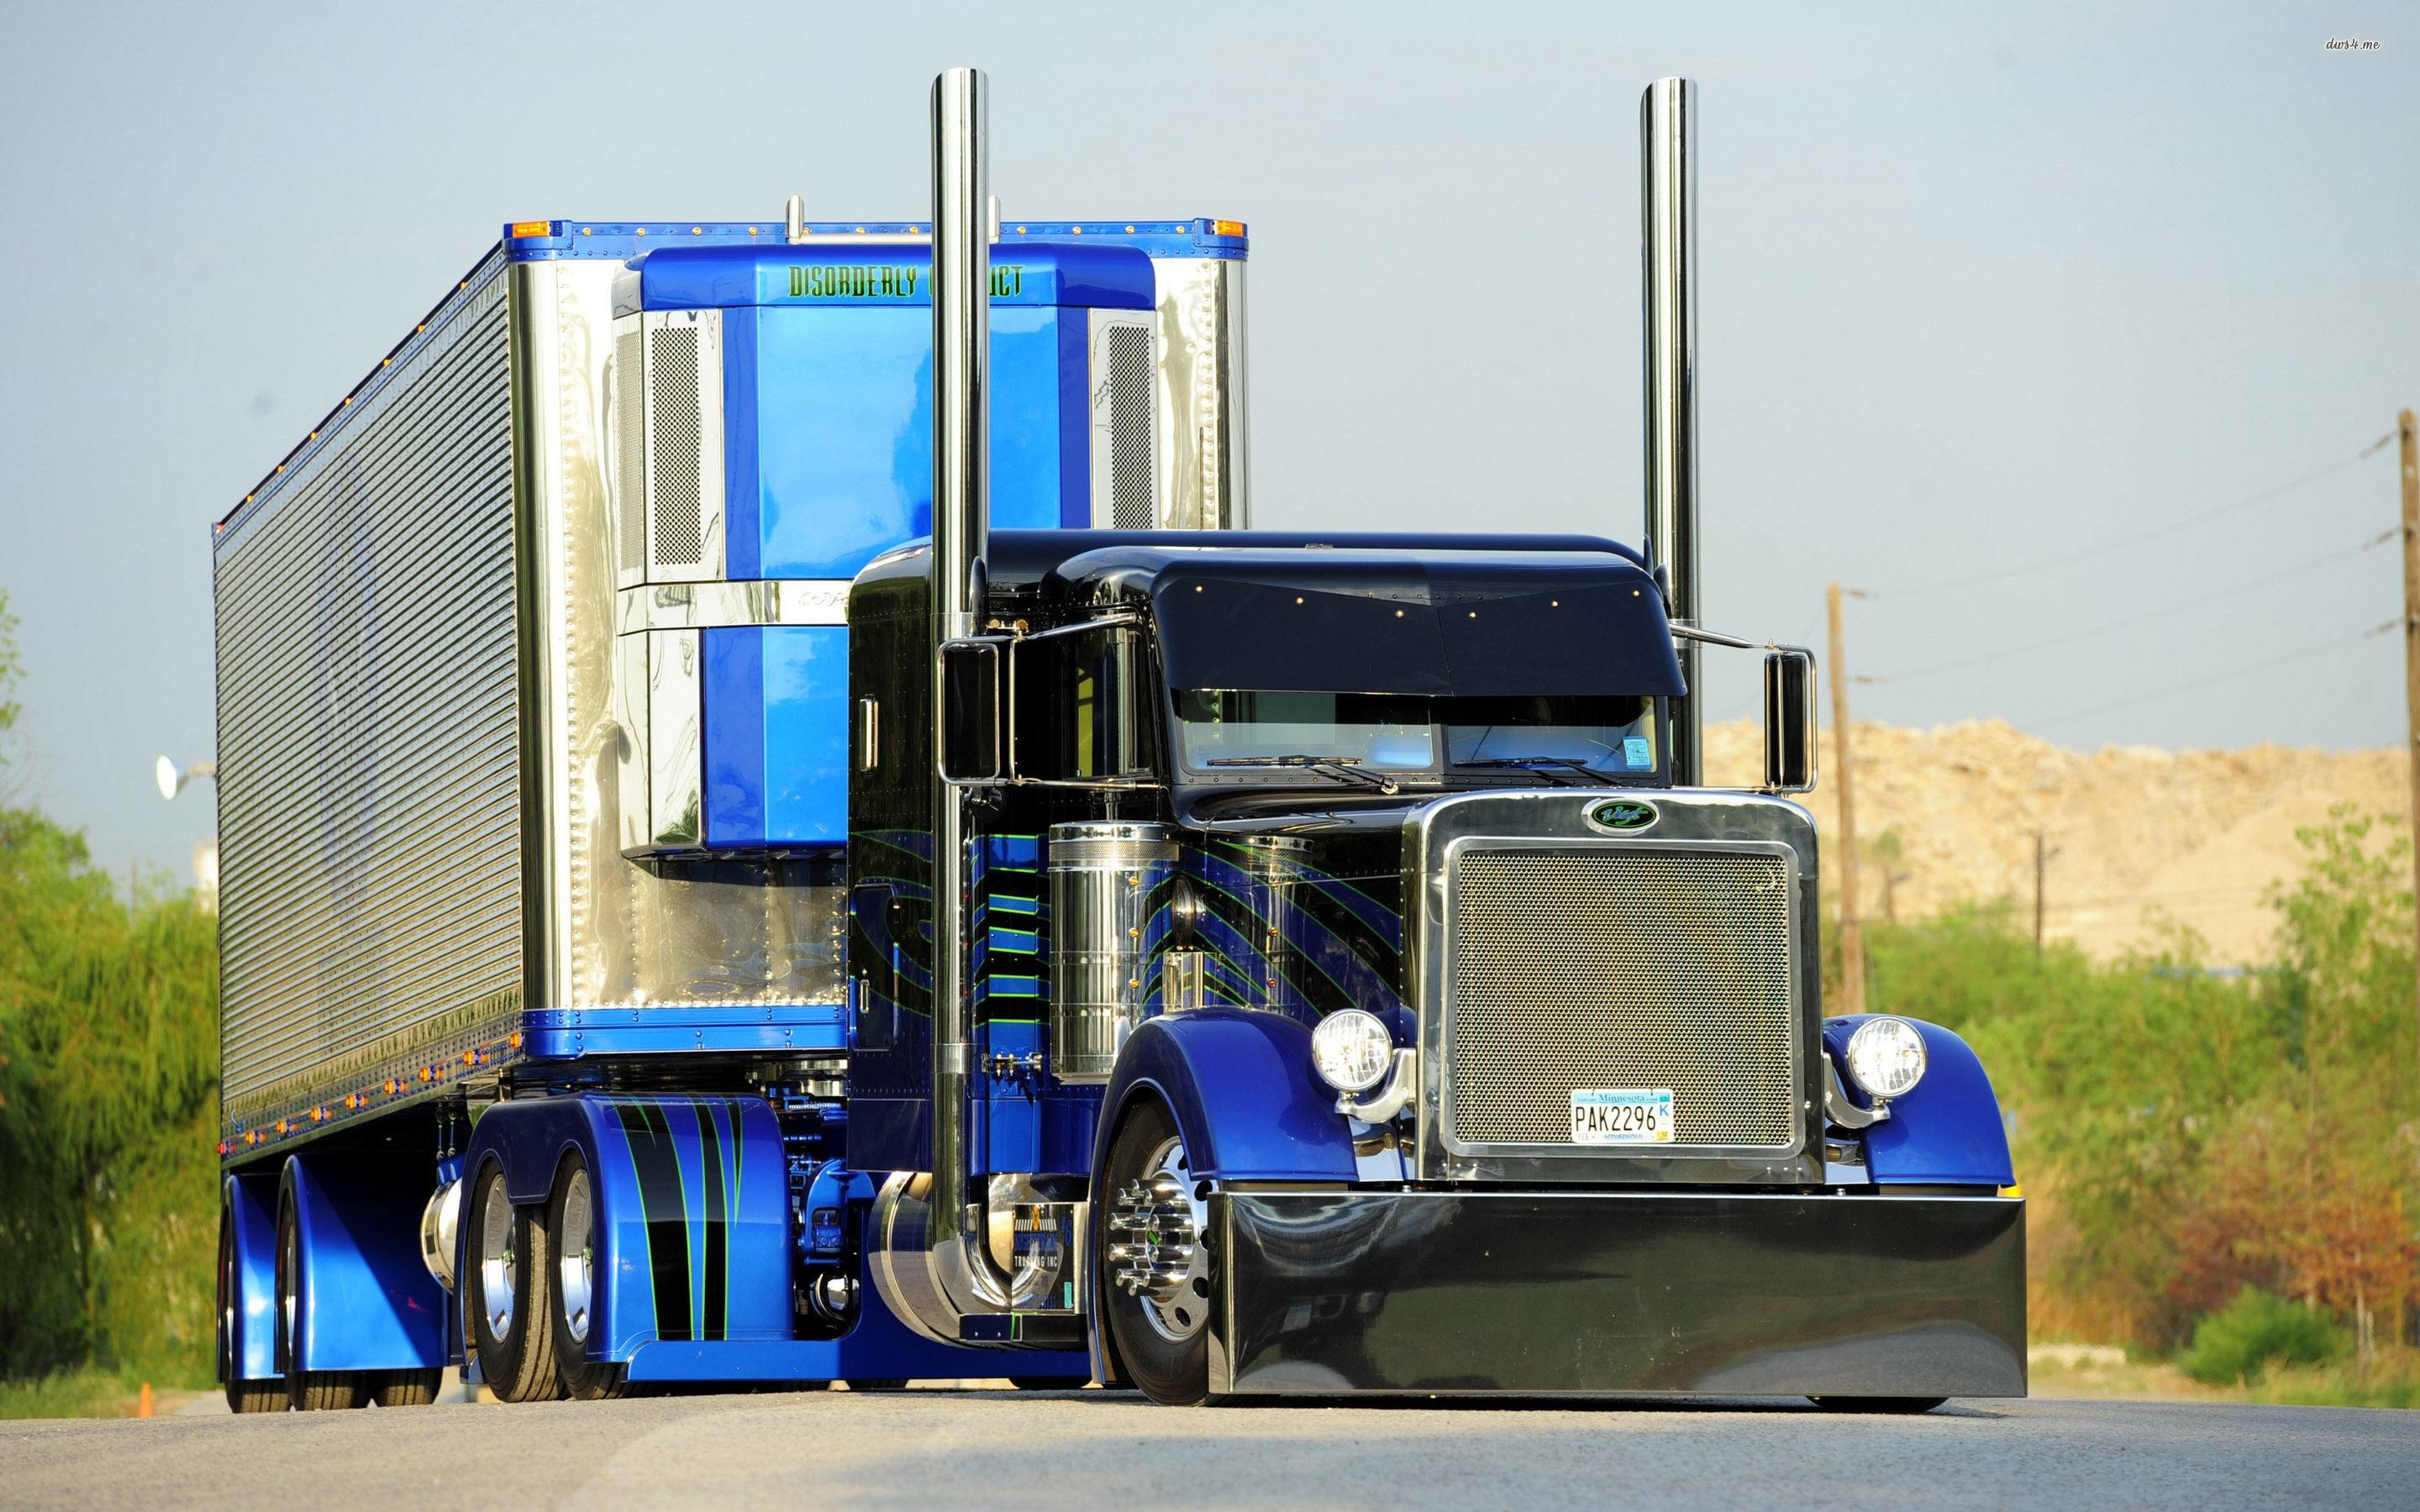 2880x1800 Peterbilt truck wallpaper - Car wallpapers - #